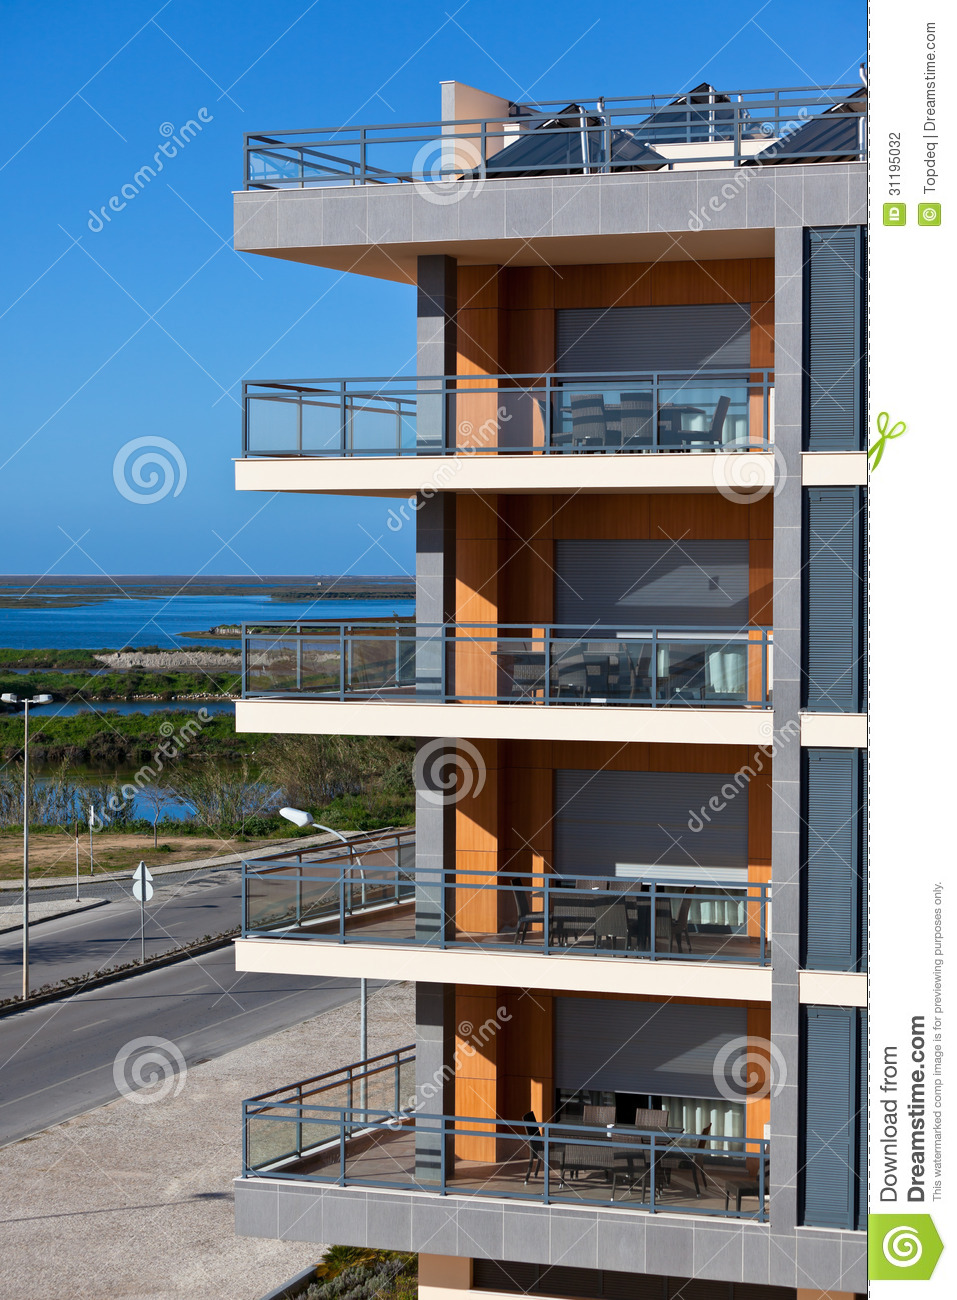 New resort apartment house against bright blue sky stock for Right house